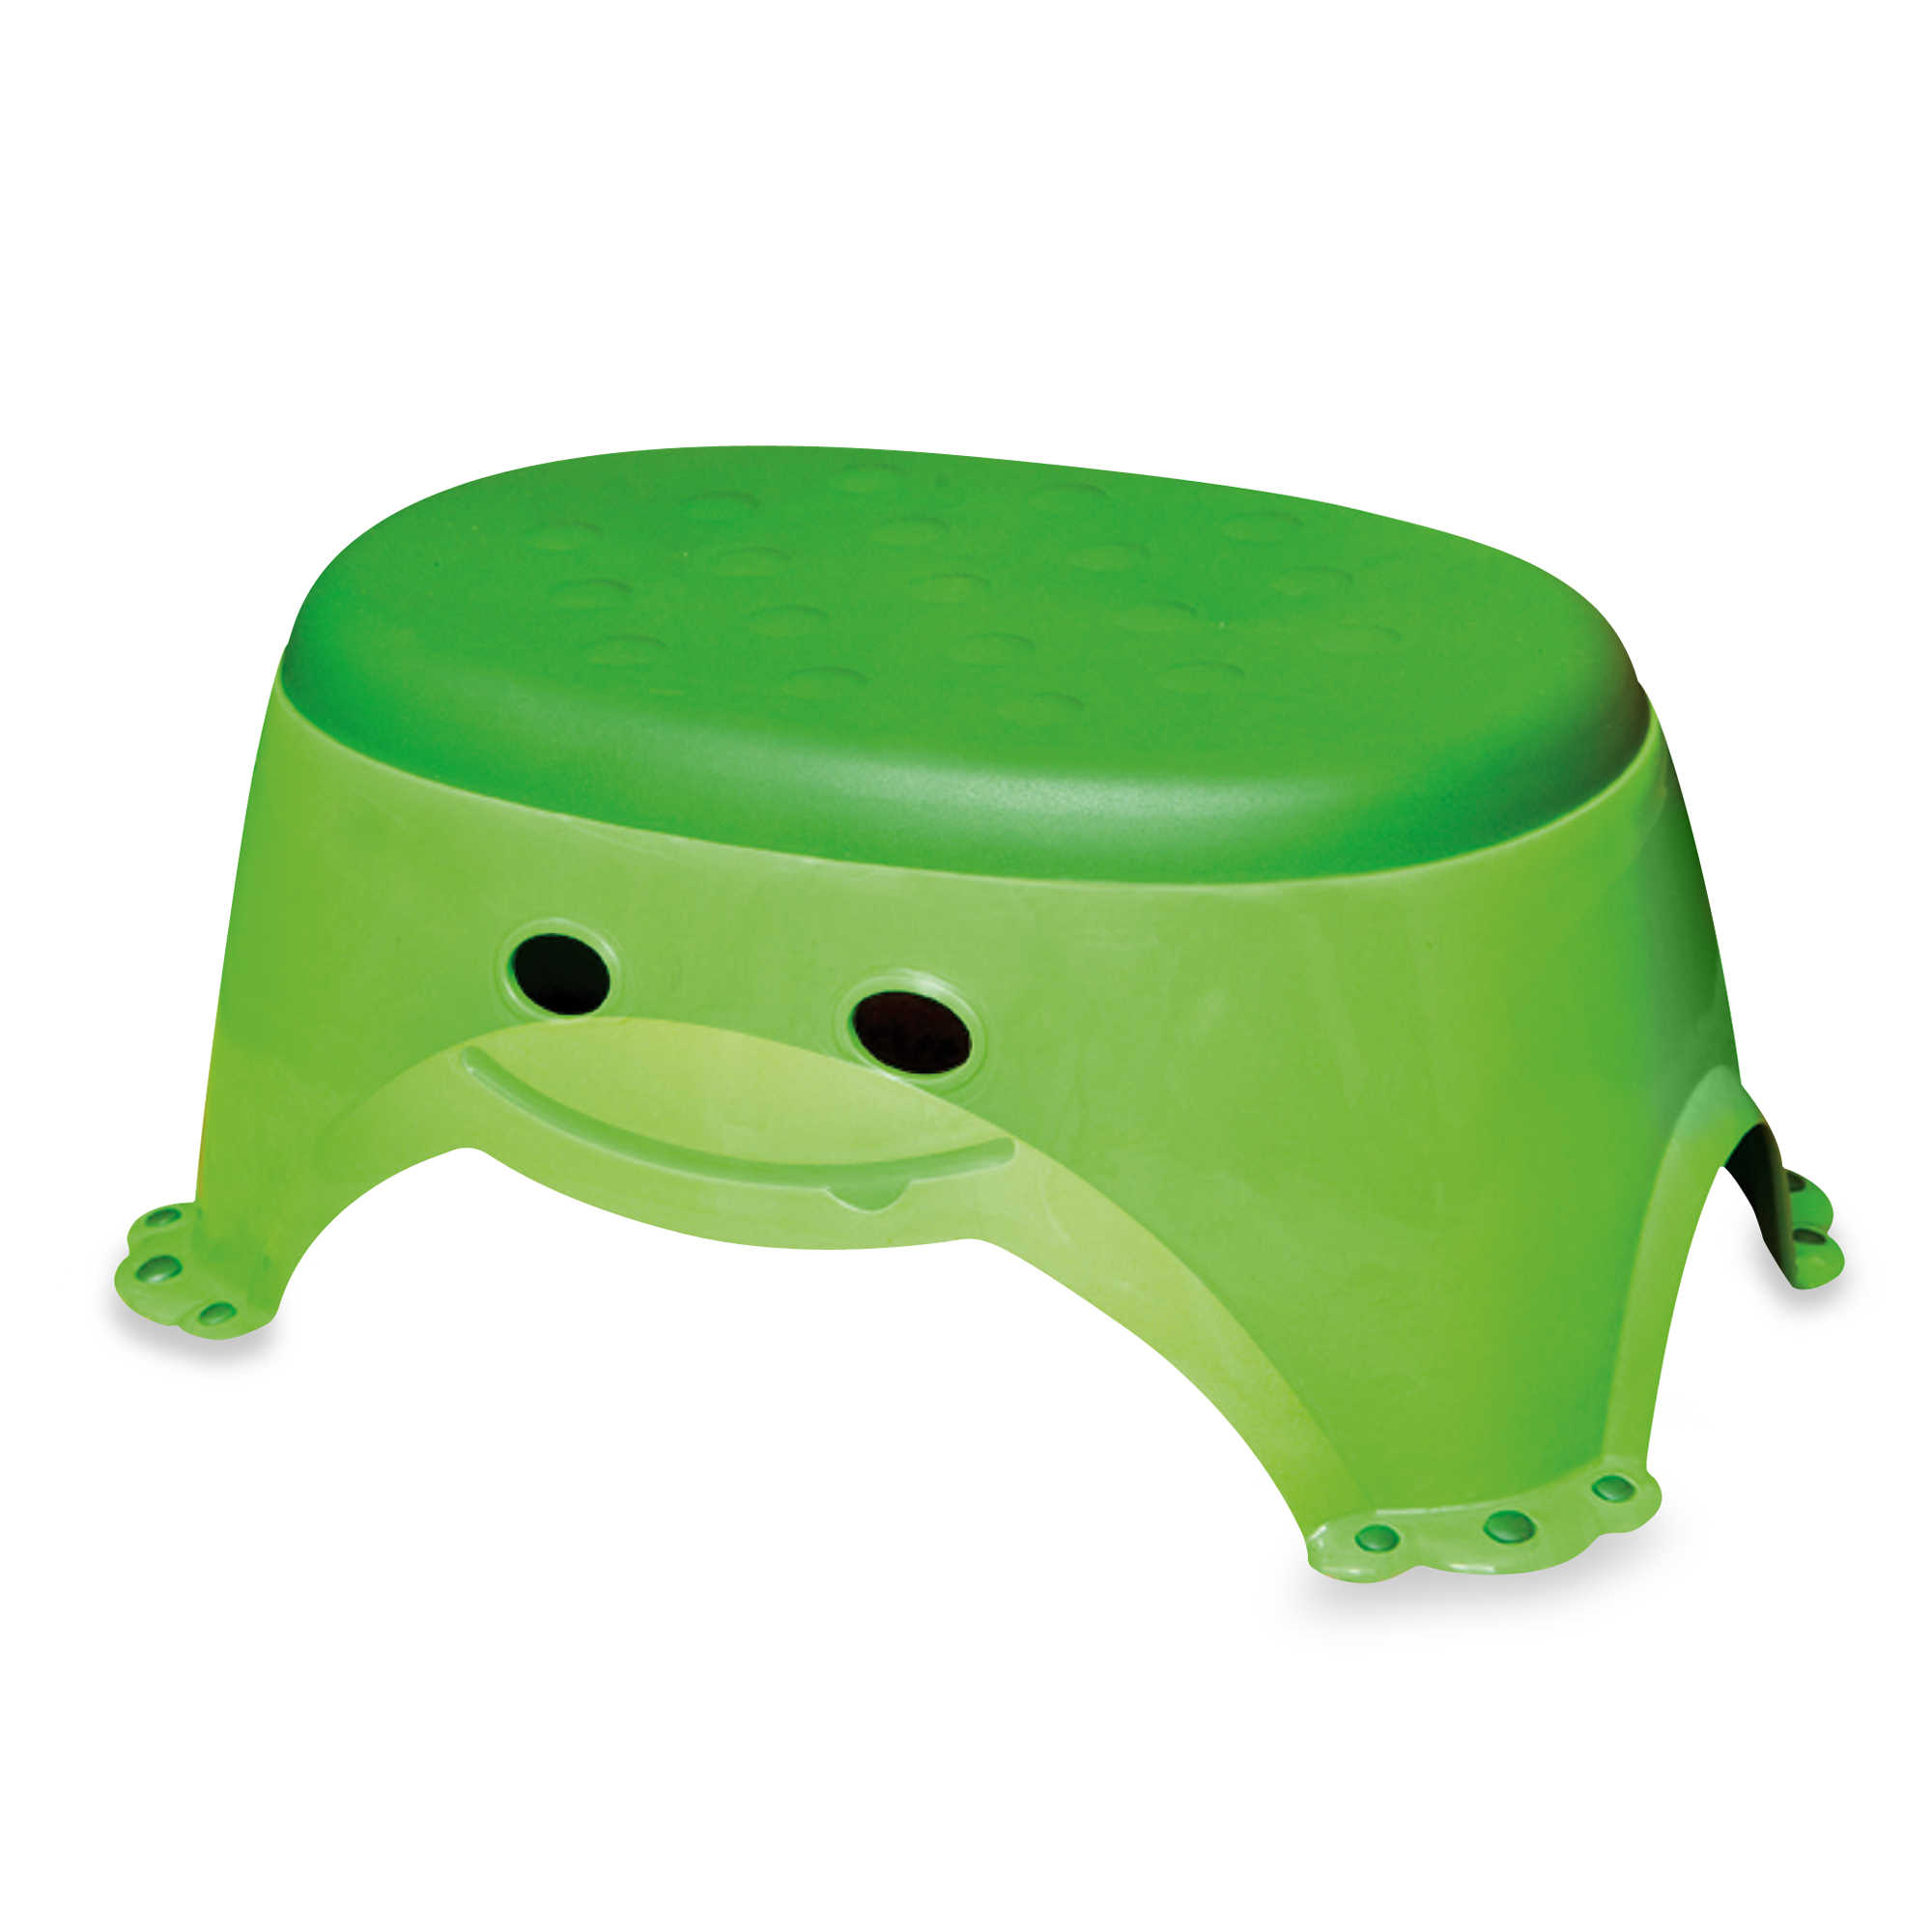 10 best kids step stools in 2017 safe step stools for for Bathroom step stool for toddlers